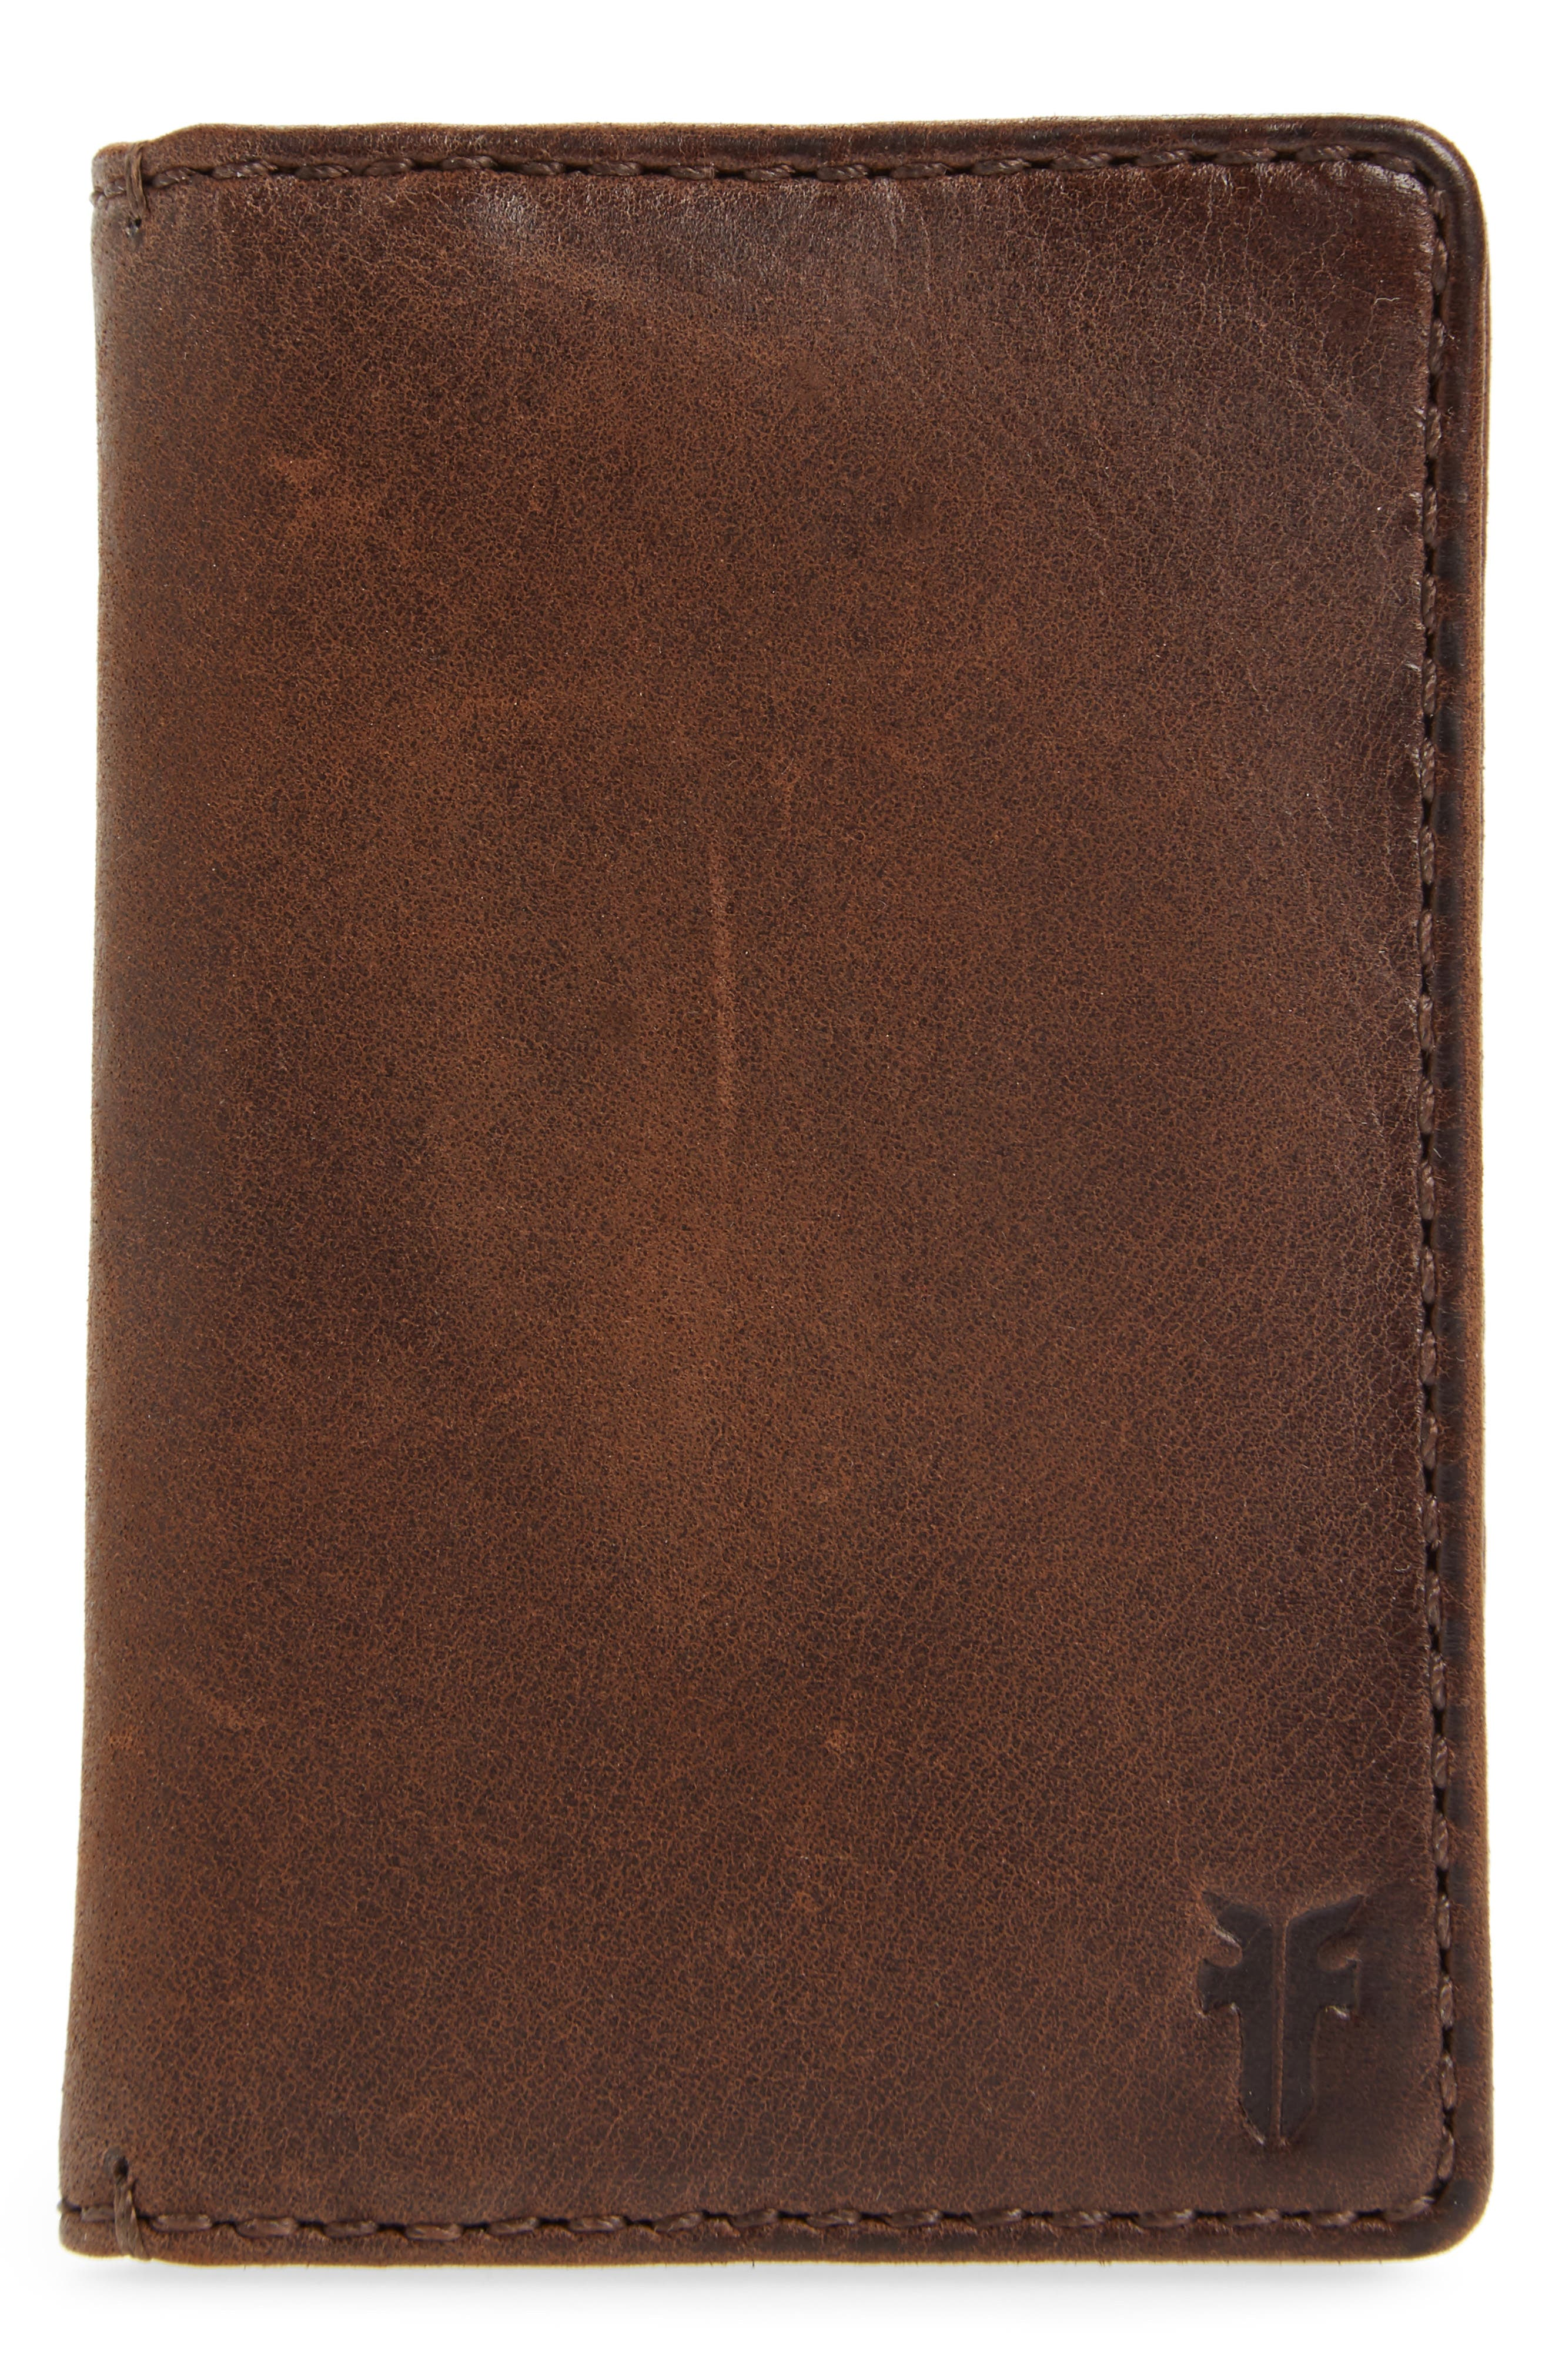 Oliver Leather Wallet,                             Main thumbnail 1, color,                             Dark Brown